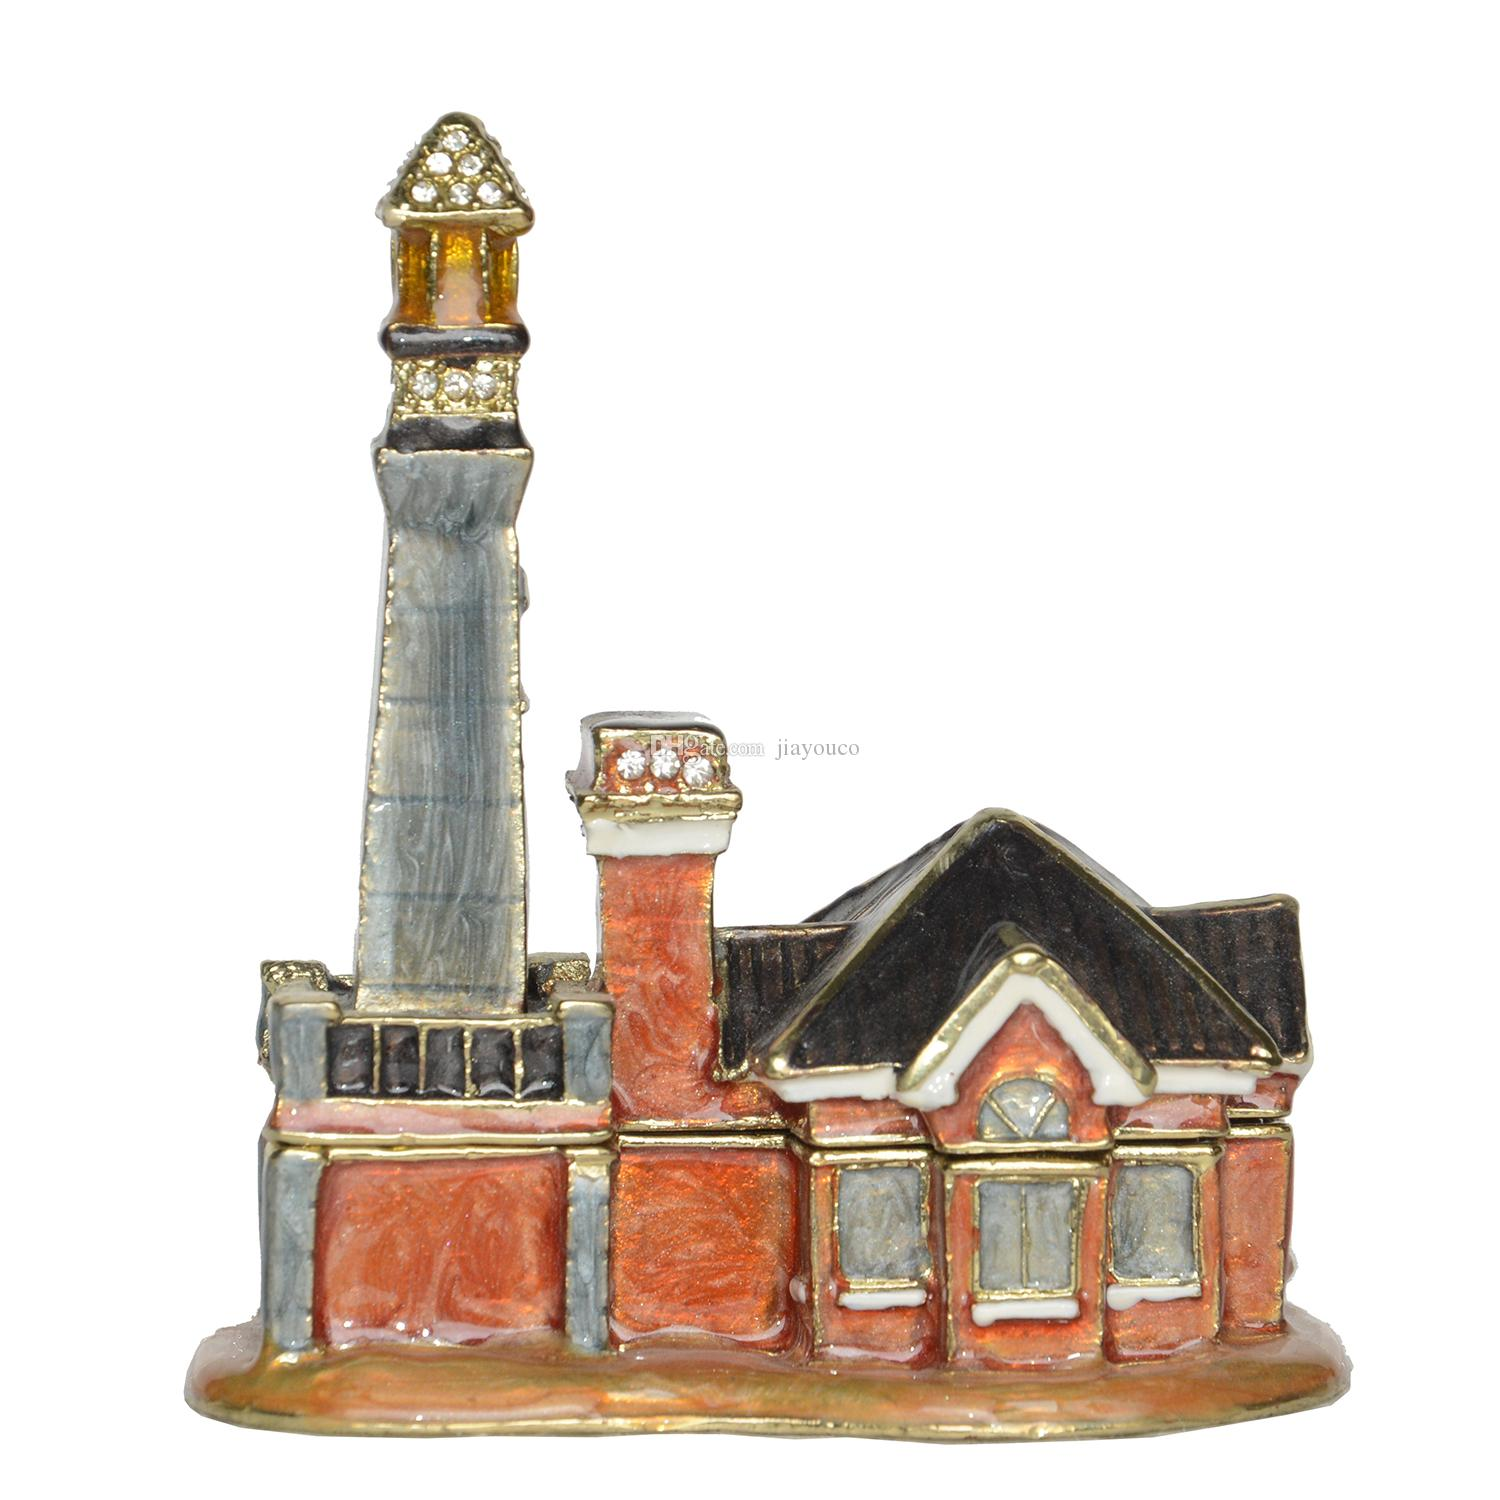 Enamel Hand Painted Light House Jeweled Trinket Box Pewter Collectibles Vintage Decor Novelty Gifts